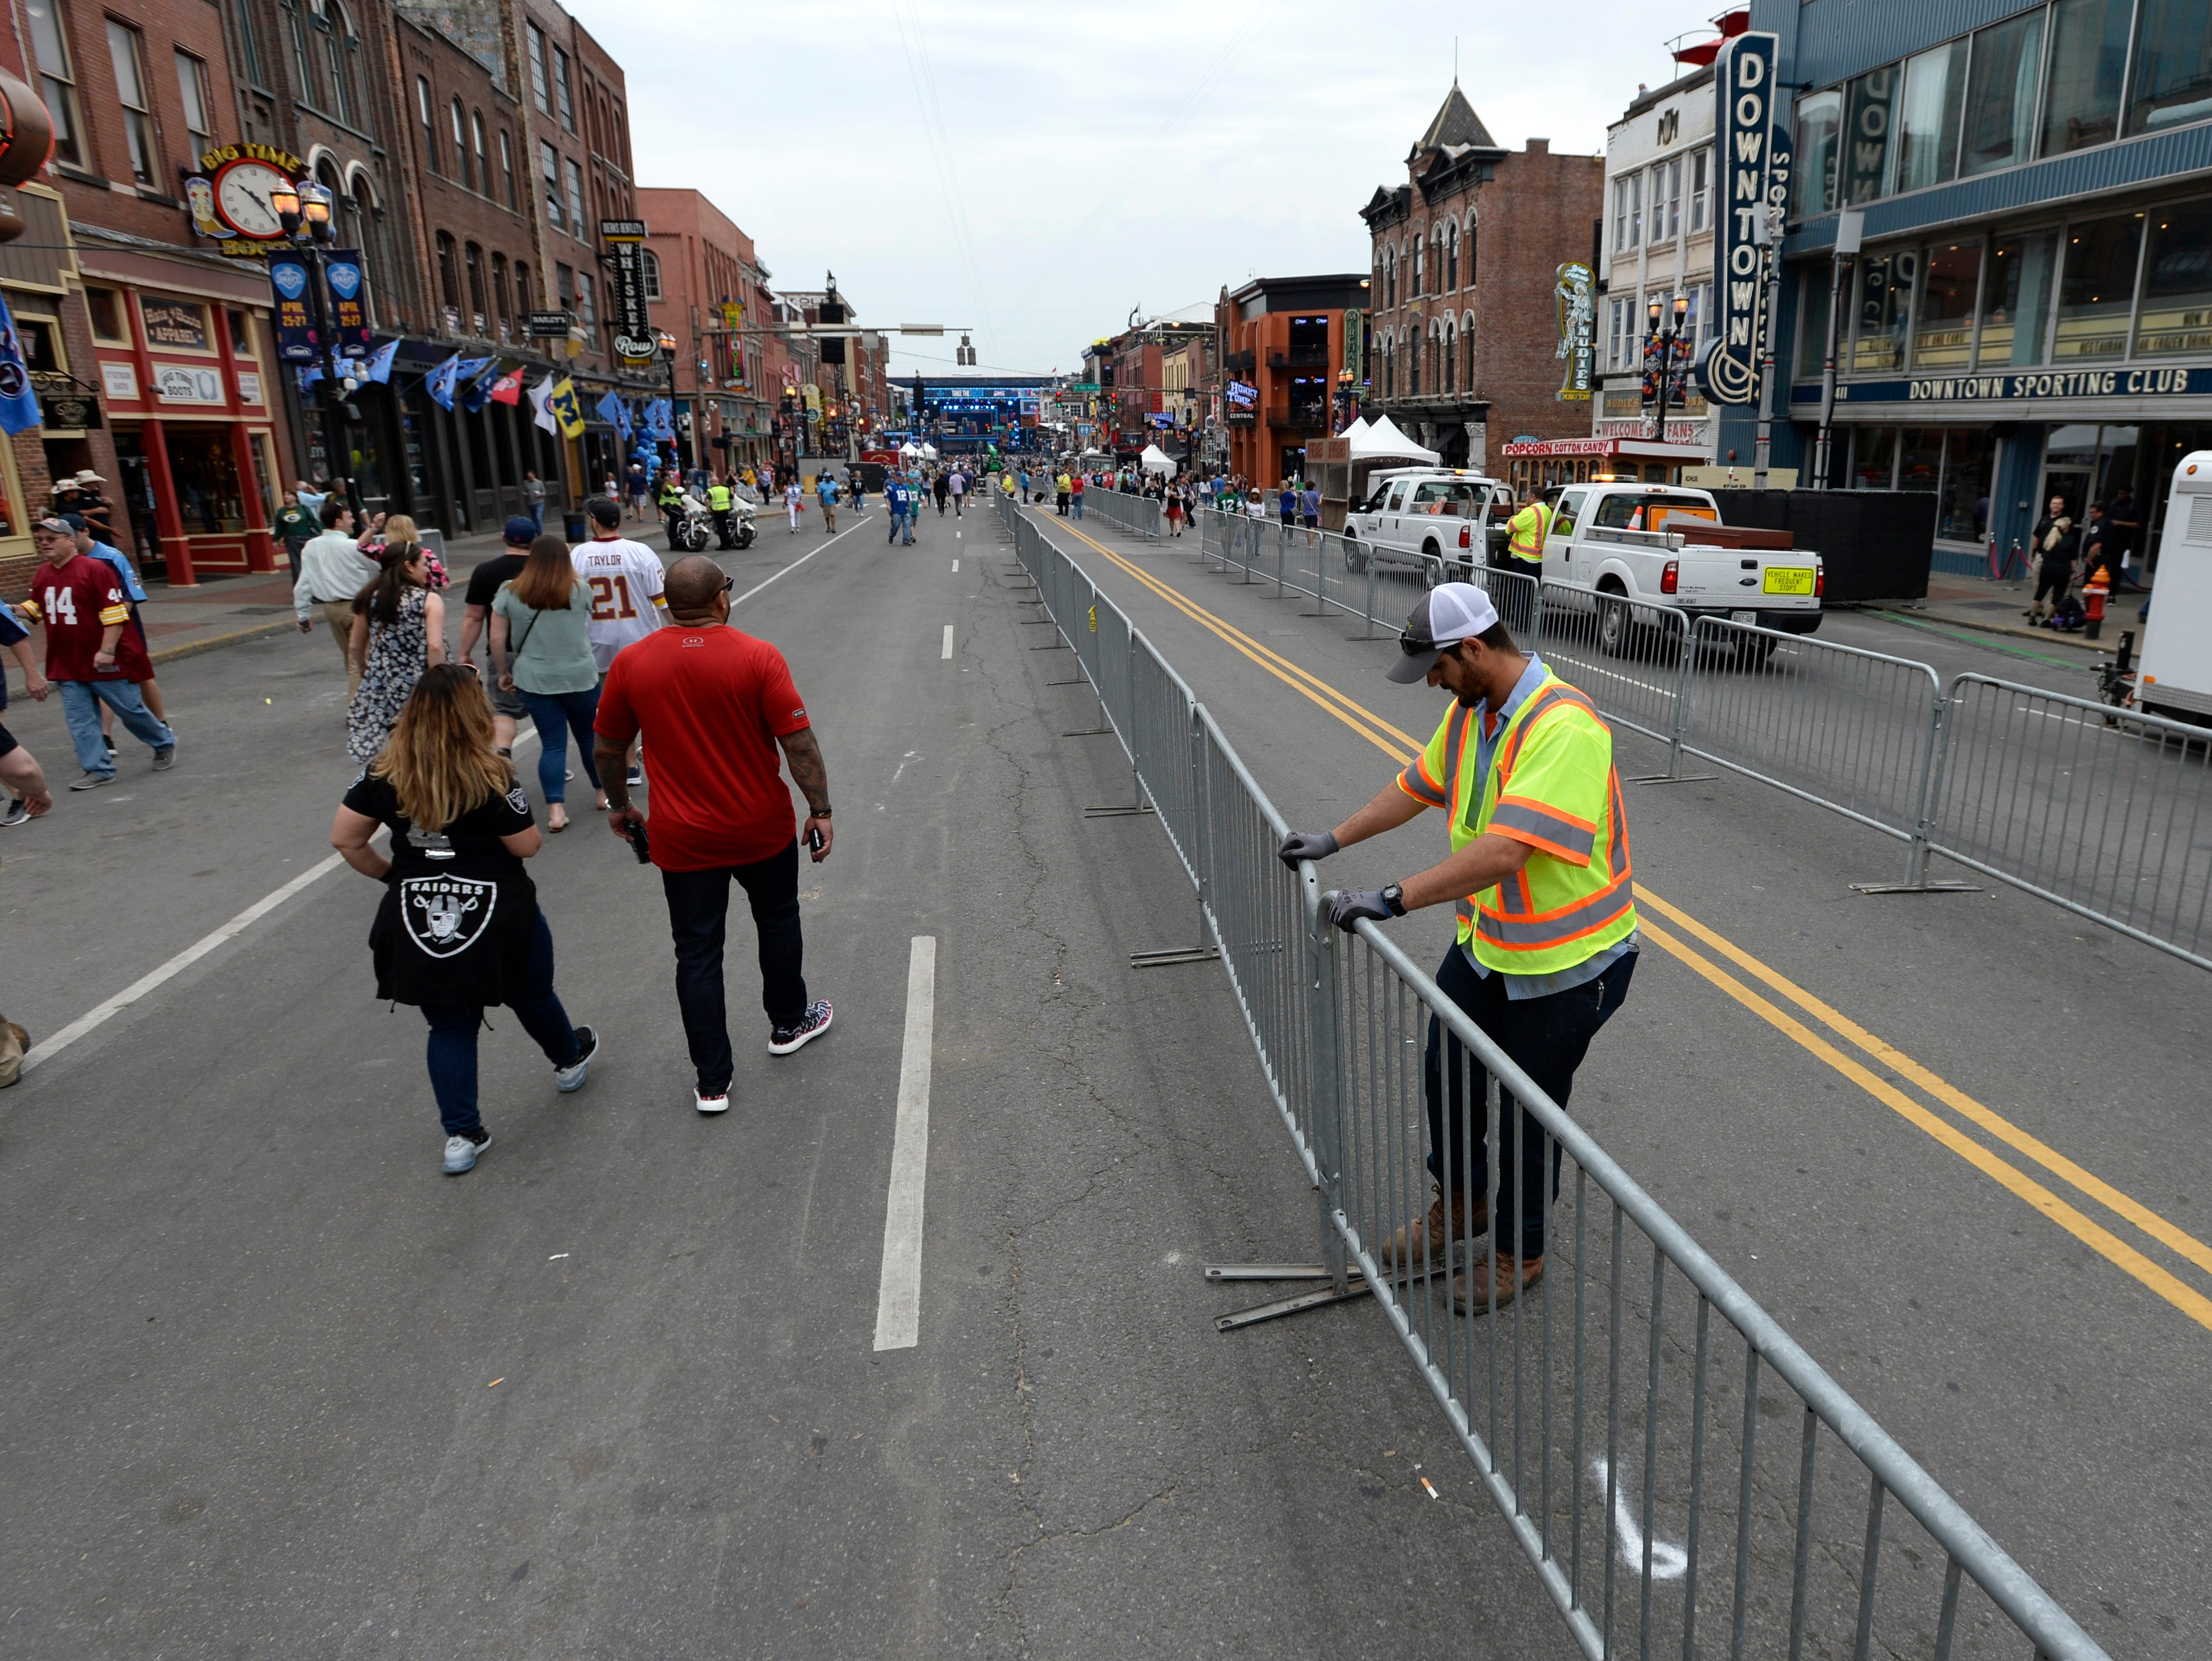 A city worker puts up a barrier for a lane of traffic for the the 2019 NFL Draft on Lower Broadway in Nashville, Tenn., Thursday, April 25, 2019.